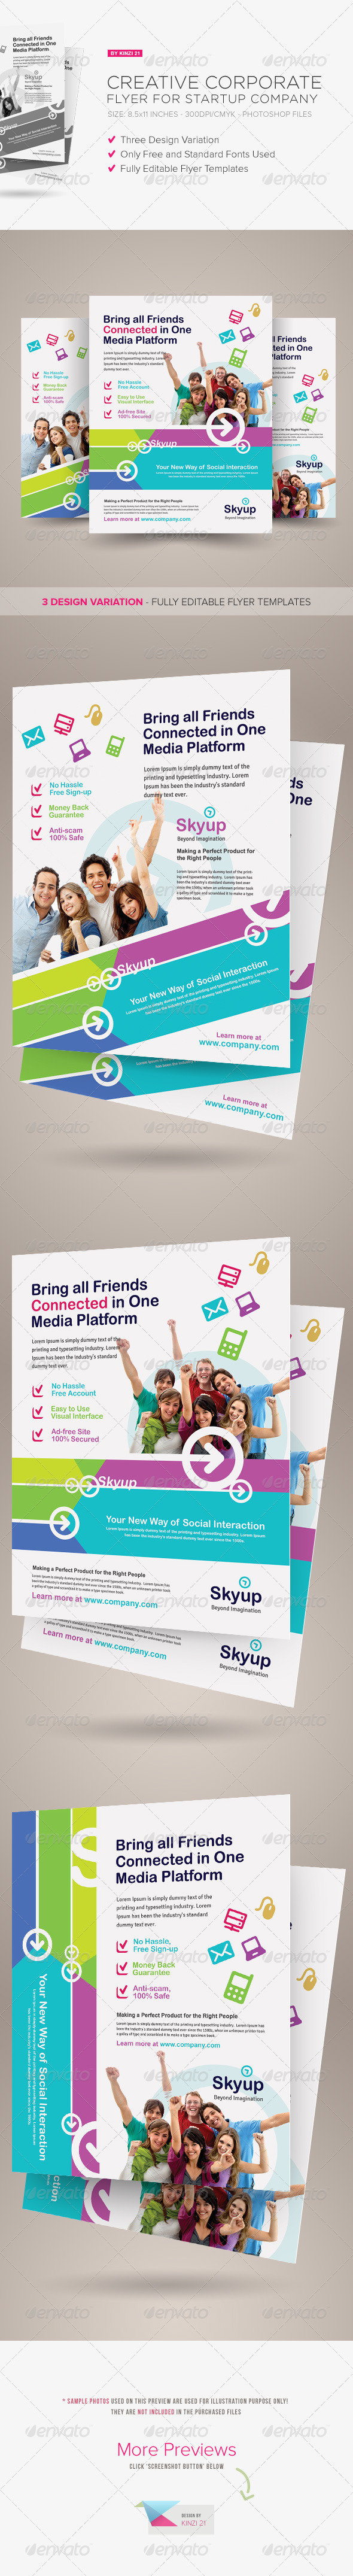 GraphicRiver Creative Corporate Flyer for Startup Company 7185143